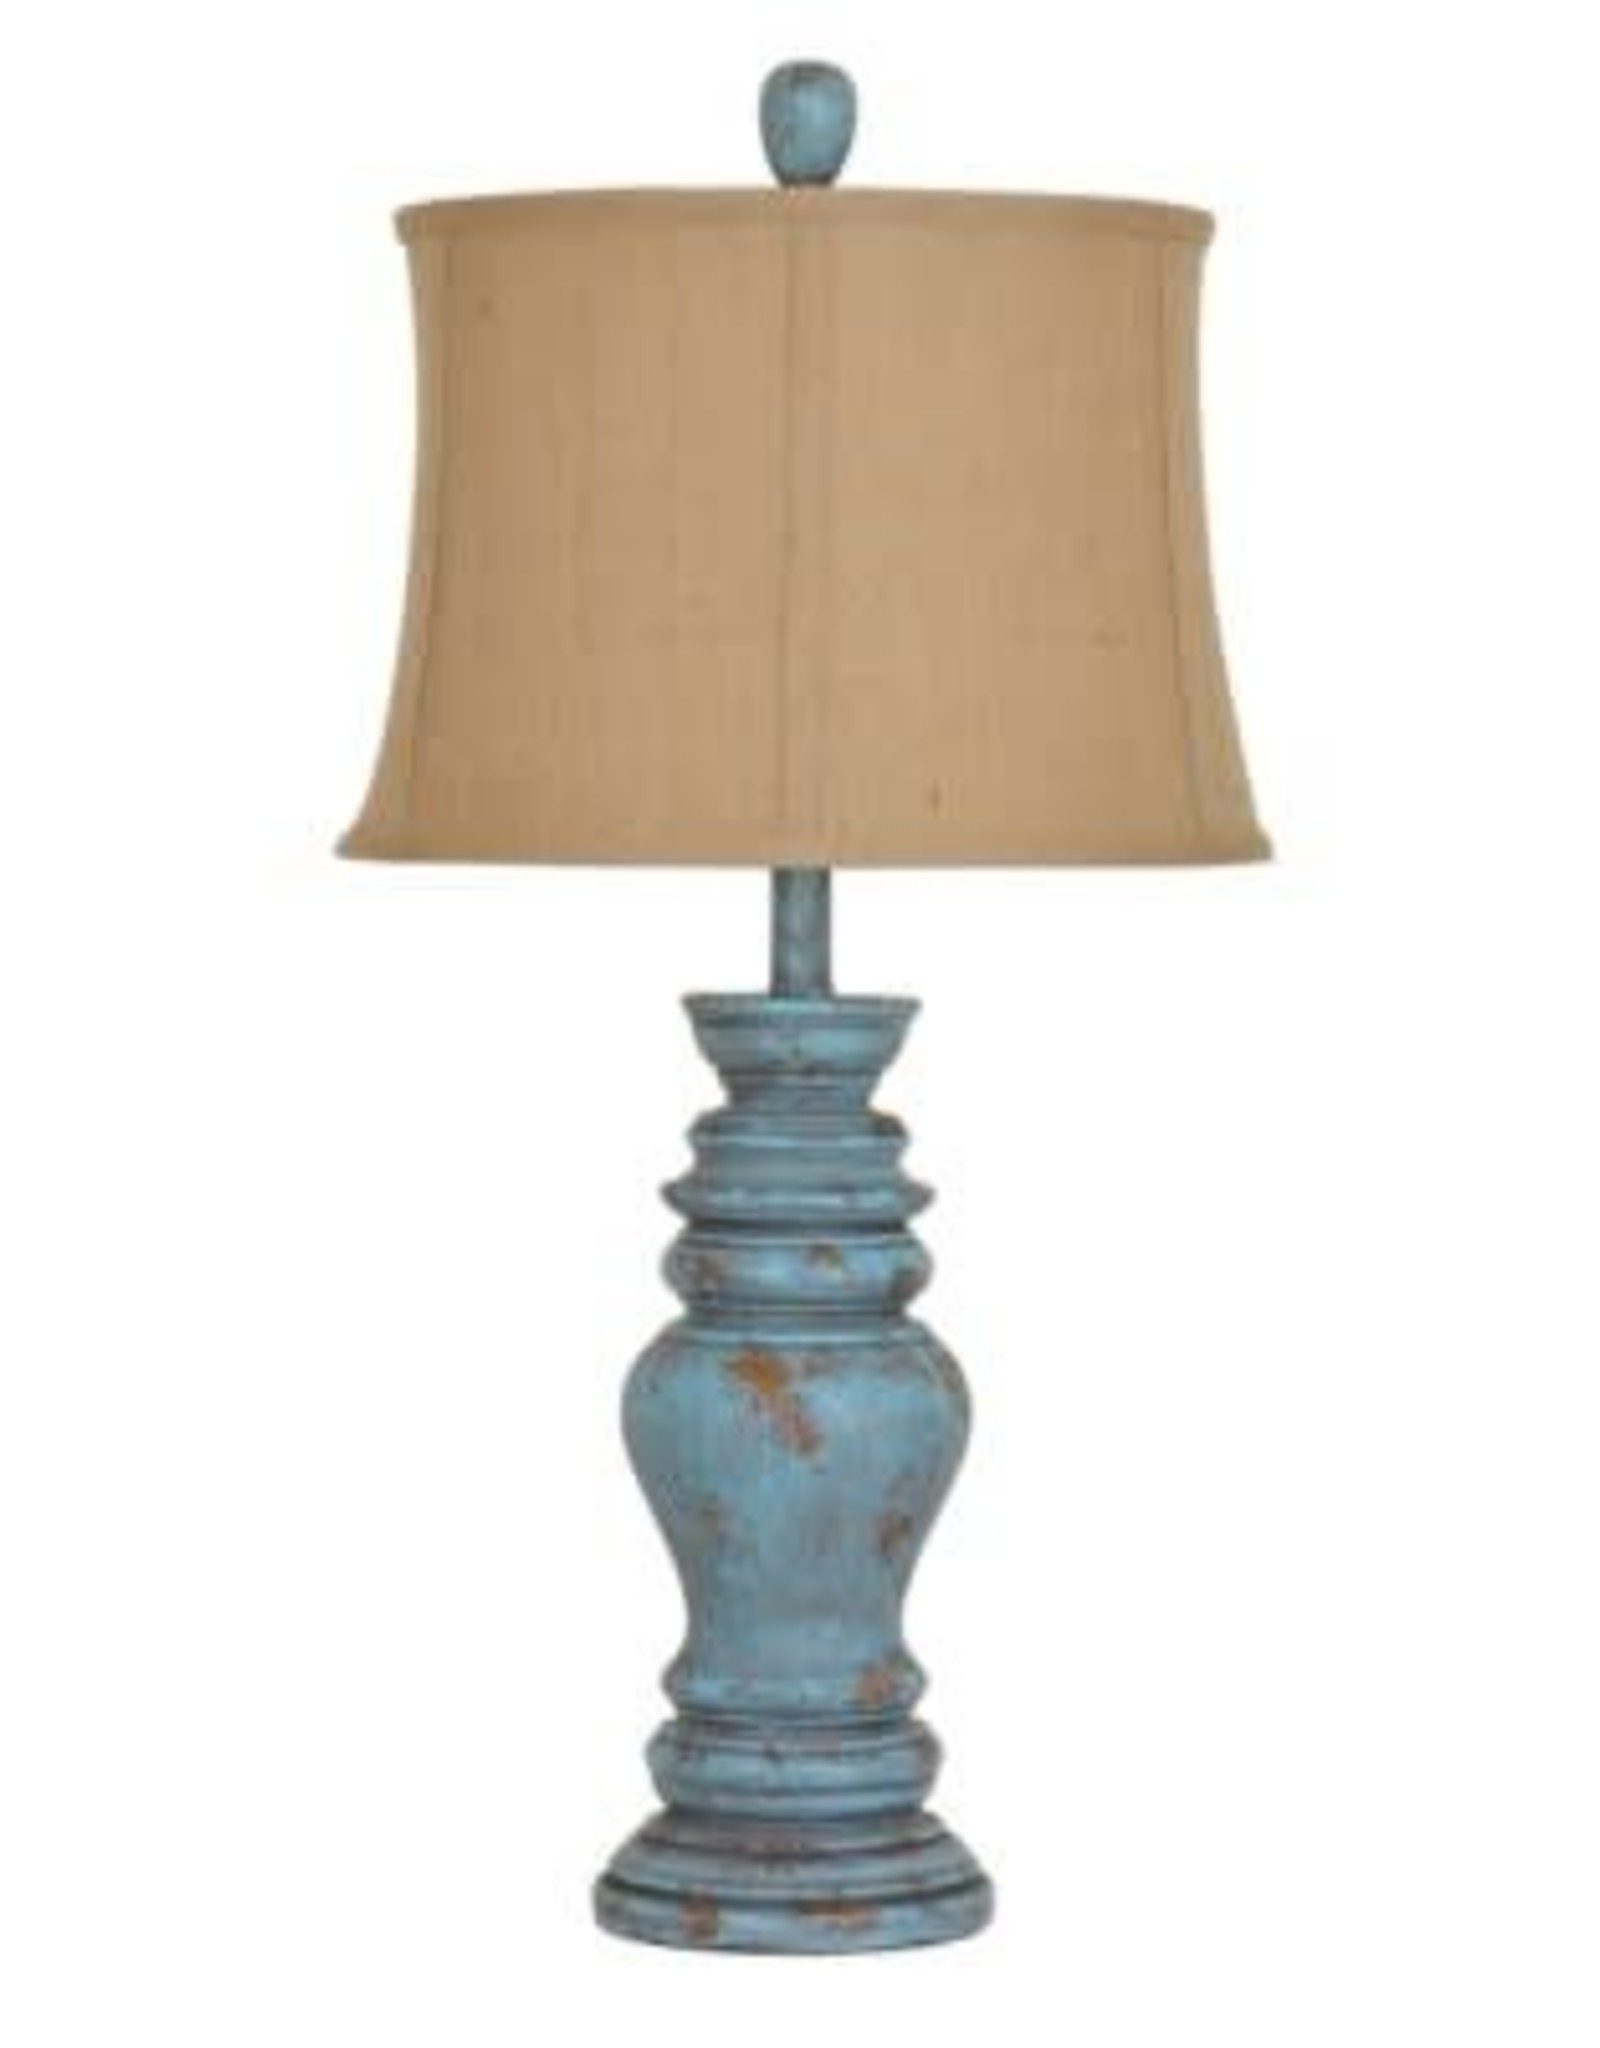 Crestview Barclay Distressed Green Table Lamp w/ Shade